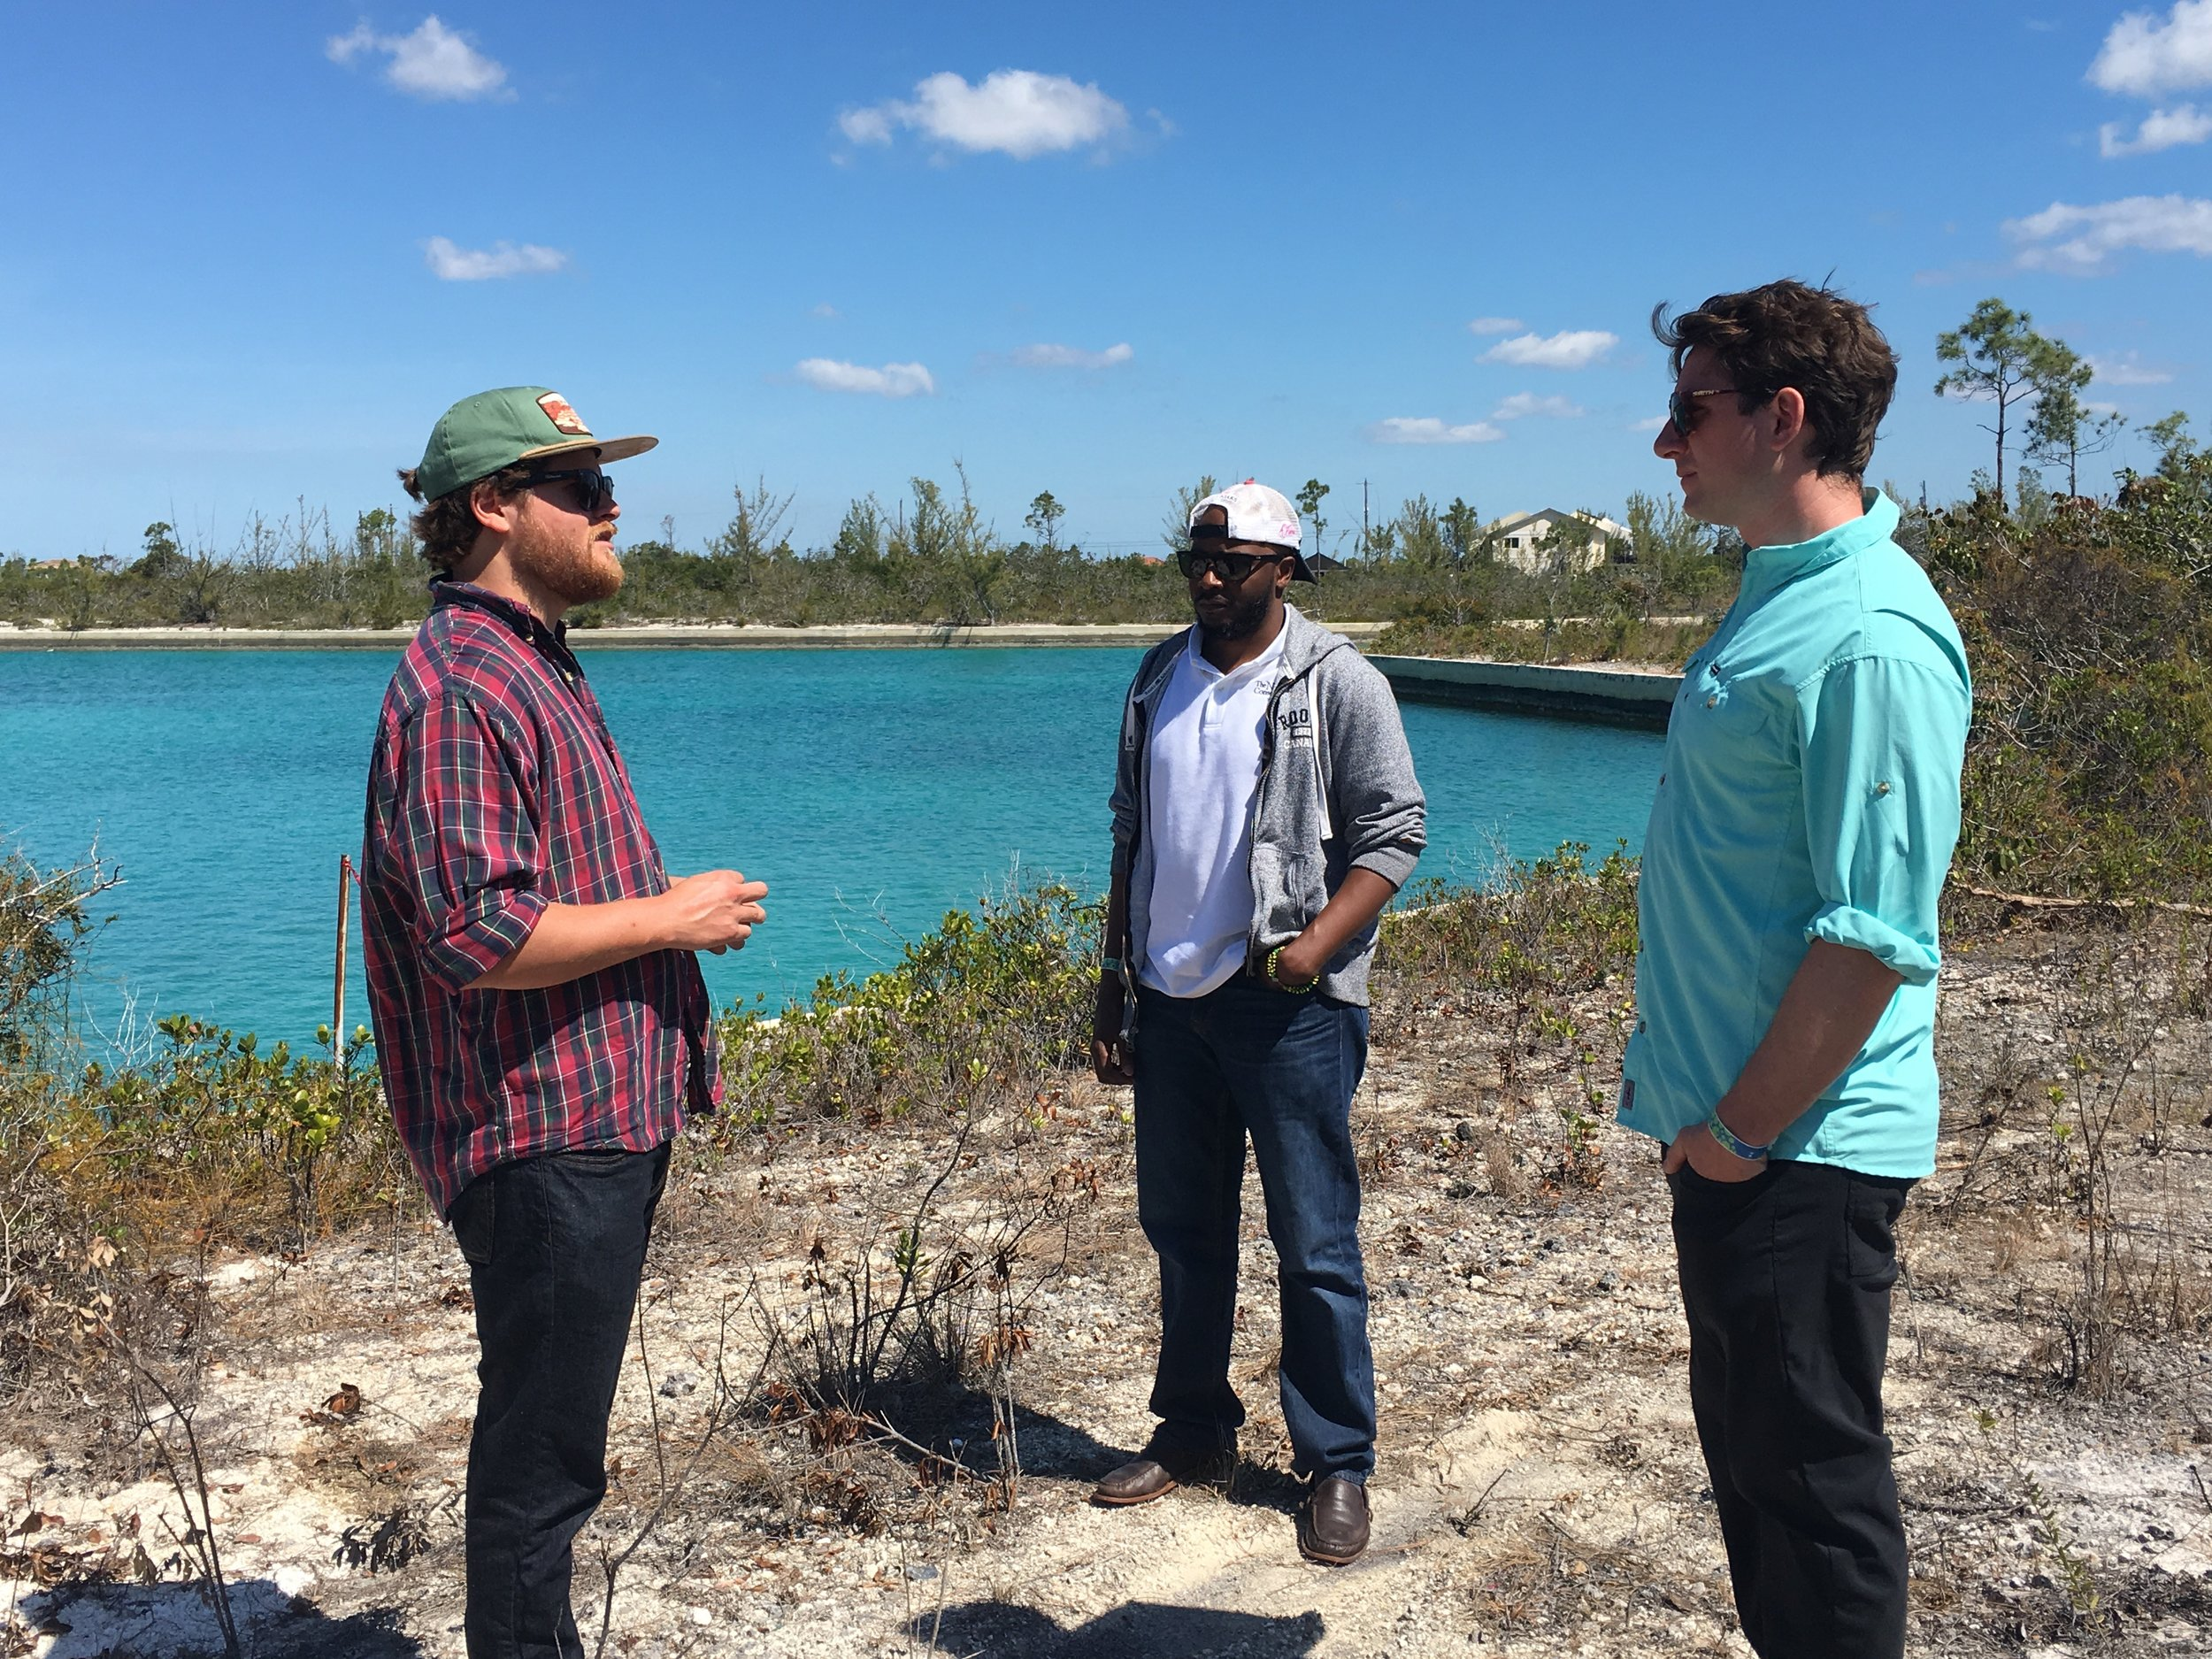 Gator sharing visions of global-scale reef restoration with the The Nature Conservancy team, starting here at the farm site in Grand Bahama.